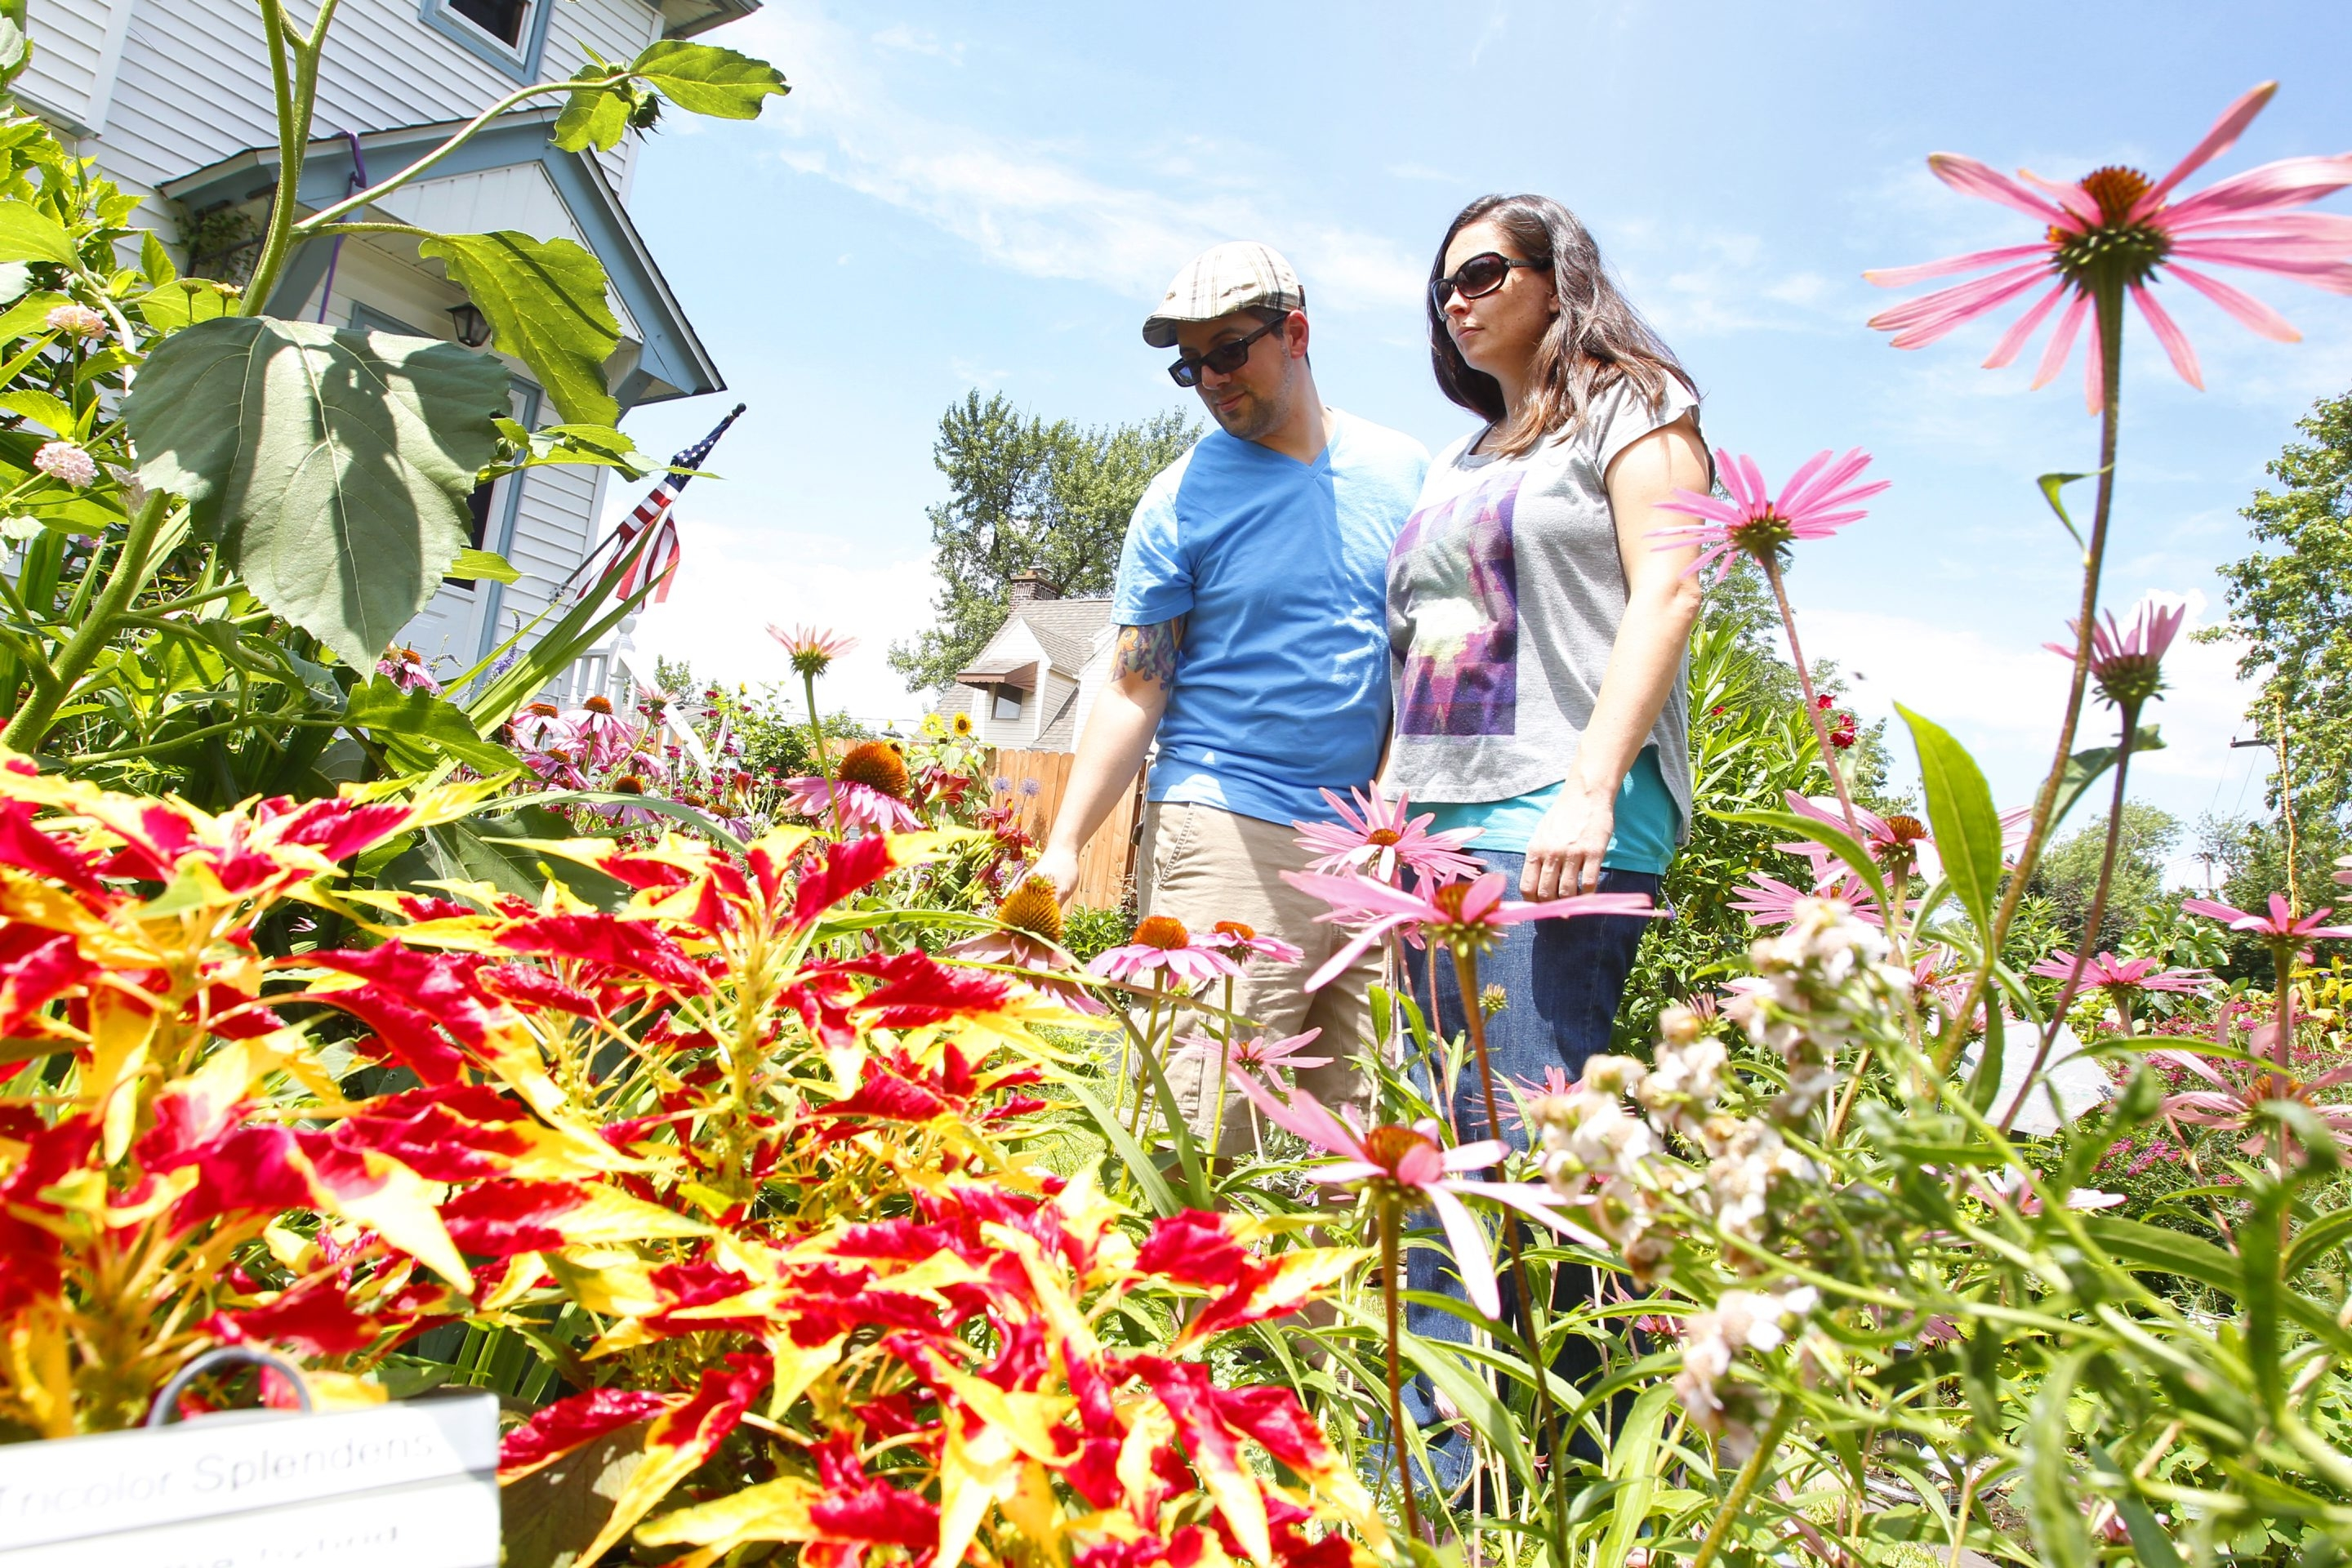 Jaime Shilen, and his wife, Jennifer, look over flowers at a home on Delaware Road in Kenmore on Saturday.